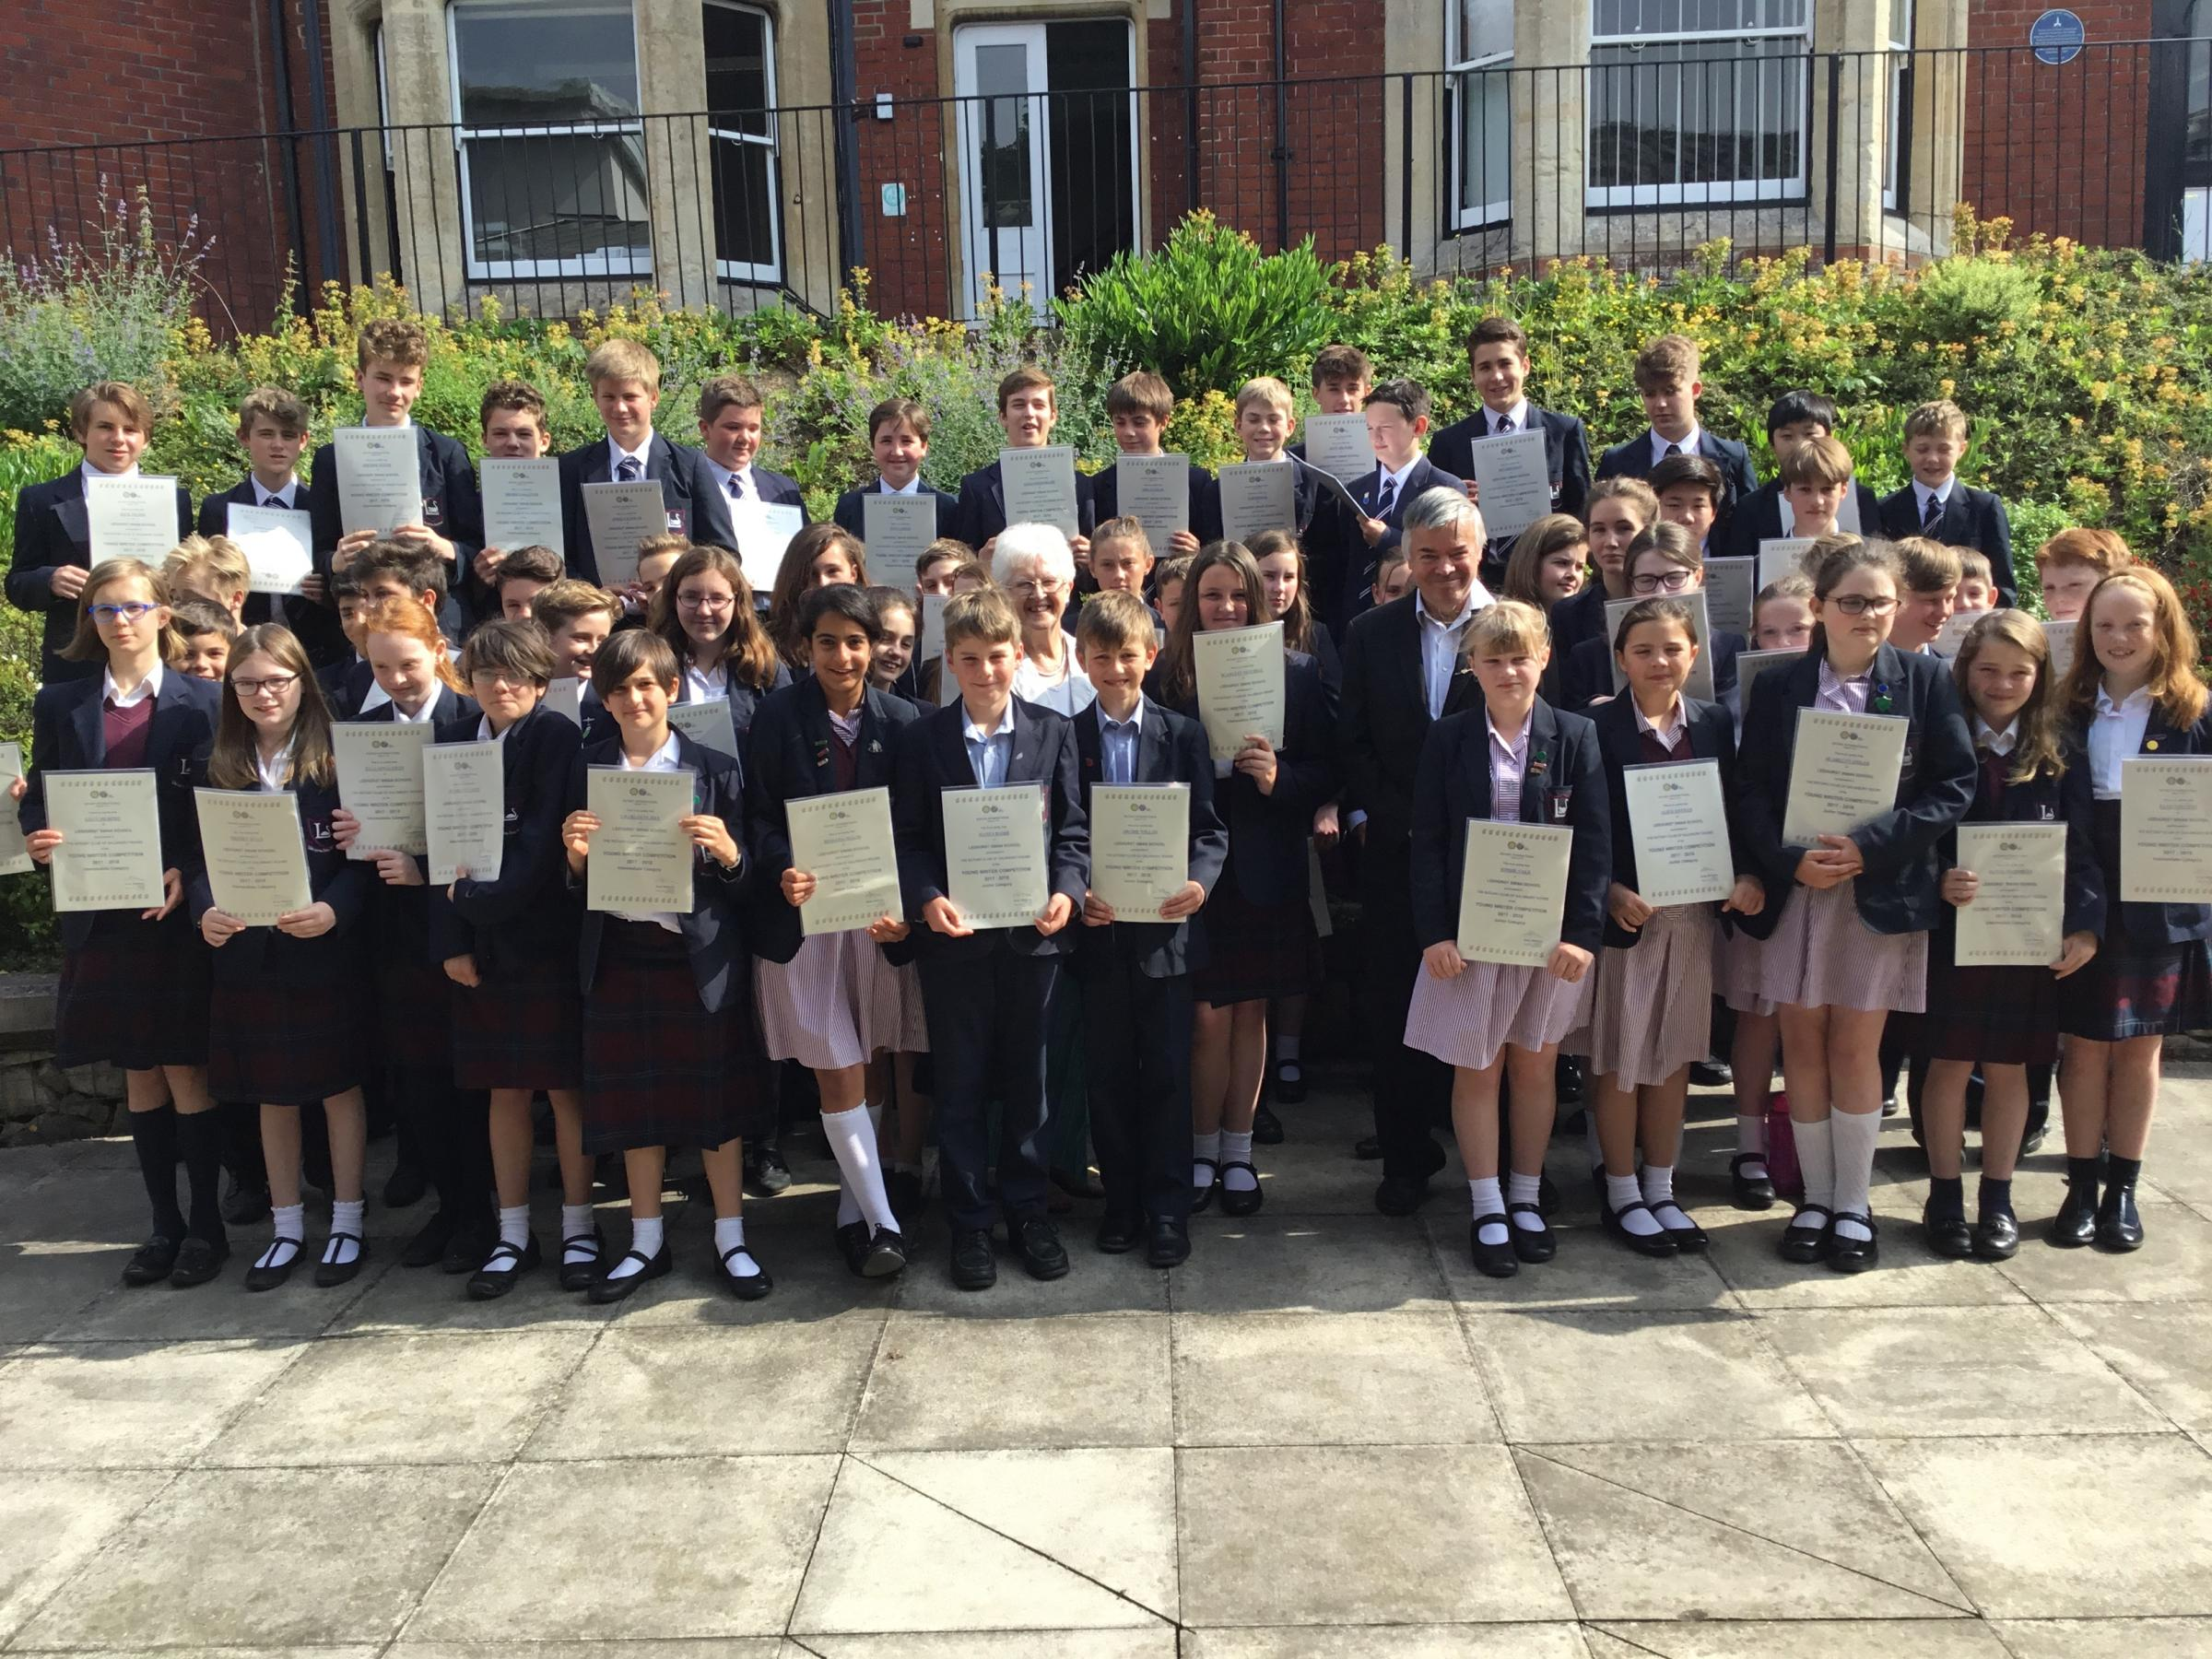 Leehurst Swan School pupils with Young Writer Competition certificates